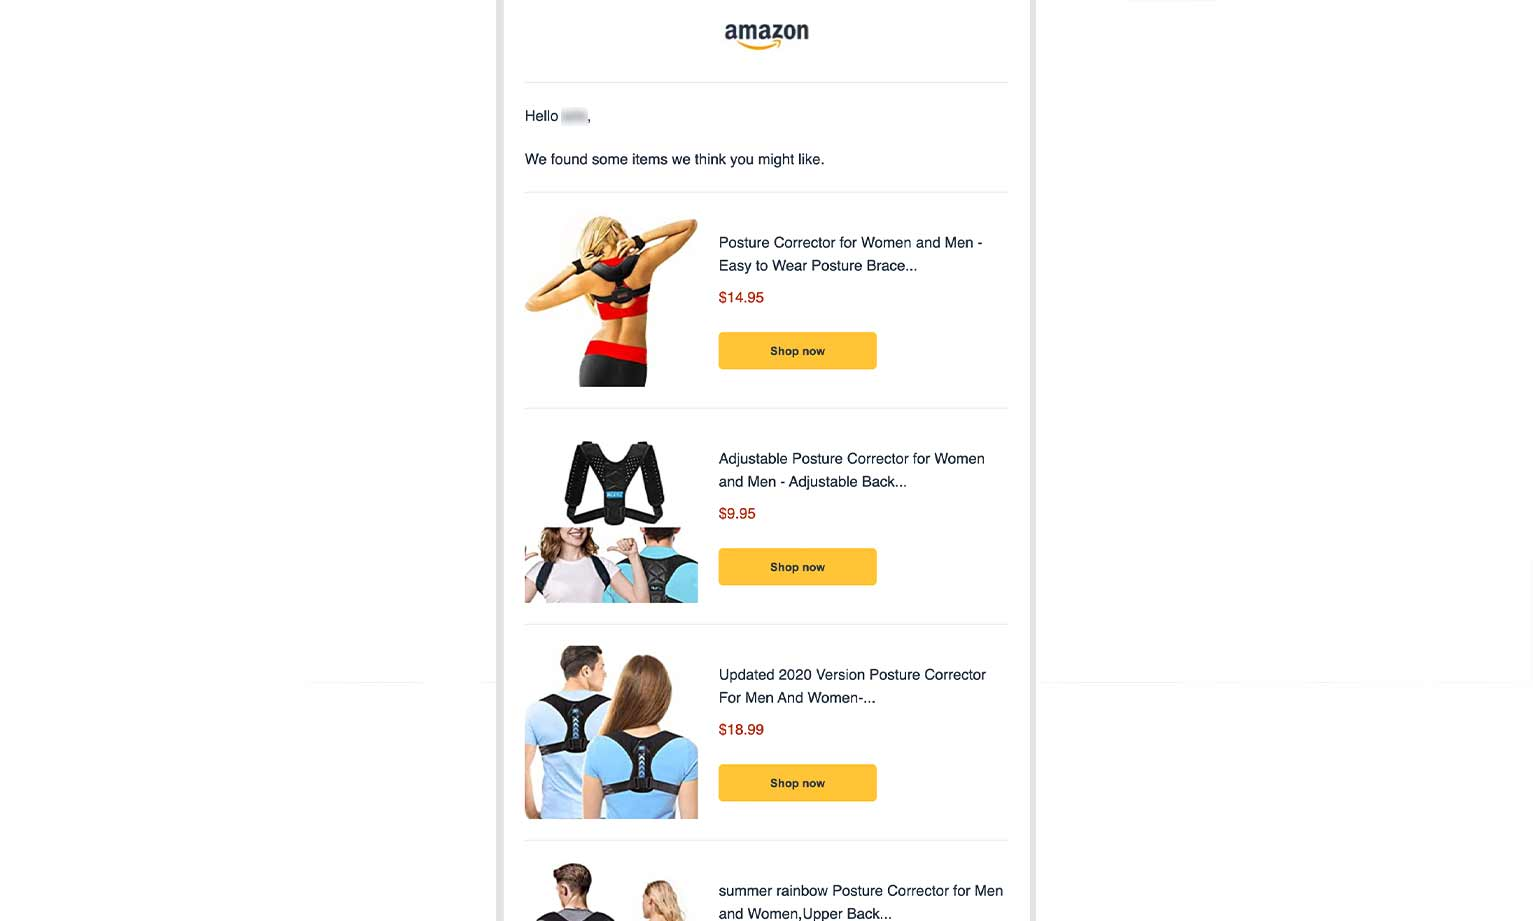 """Amazon's second purchase reminder in their sequence, offering images of similar posture correctors for sale with """"shop now"""" CTAs and pricing next to each."""